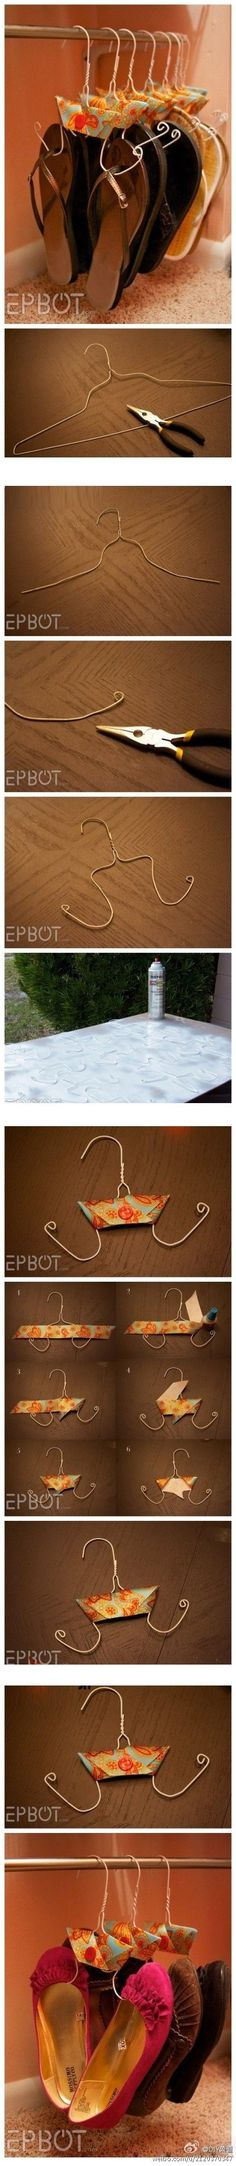 28 Insanely Easy And Clever DIY Projects | product design  | diy